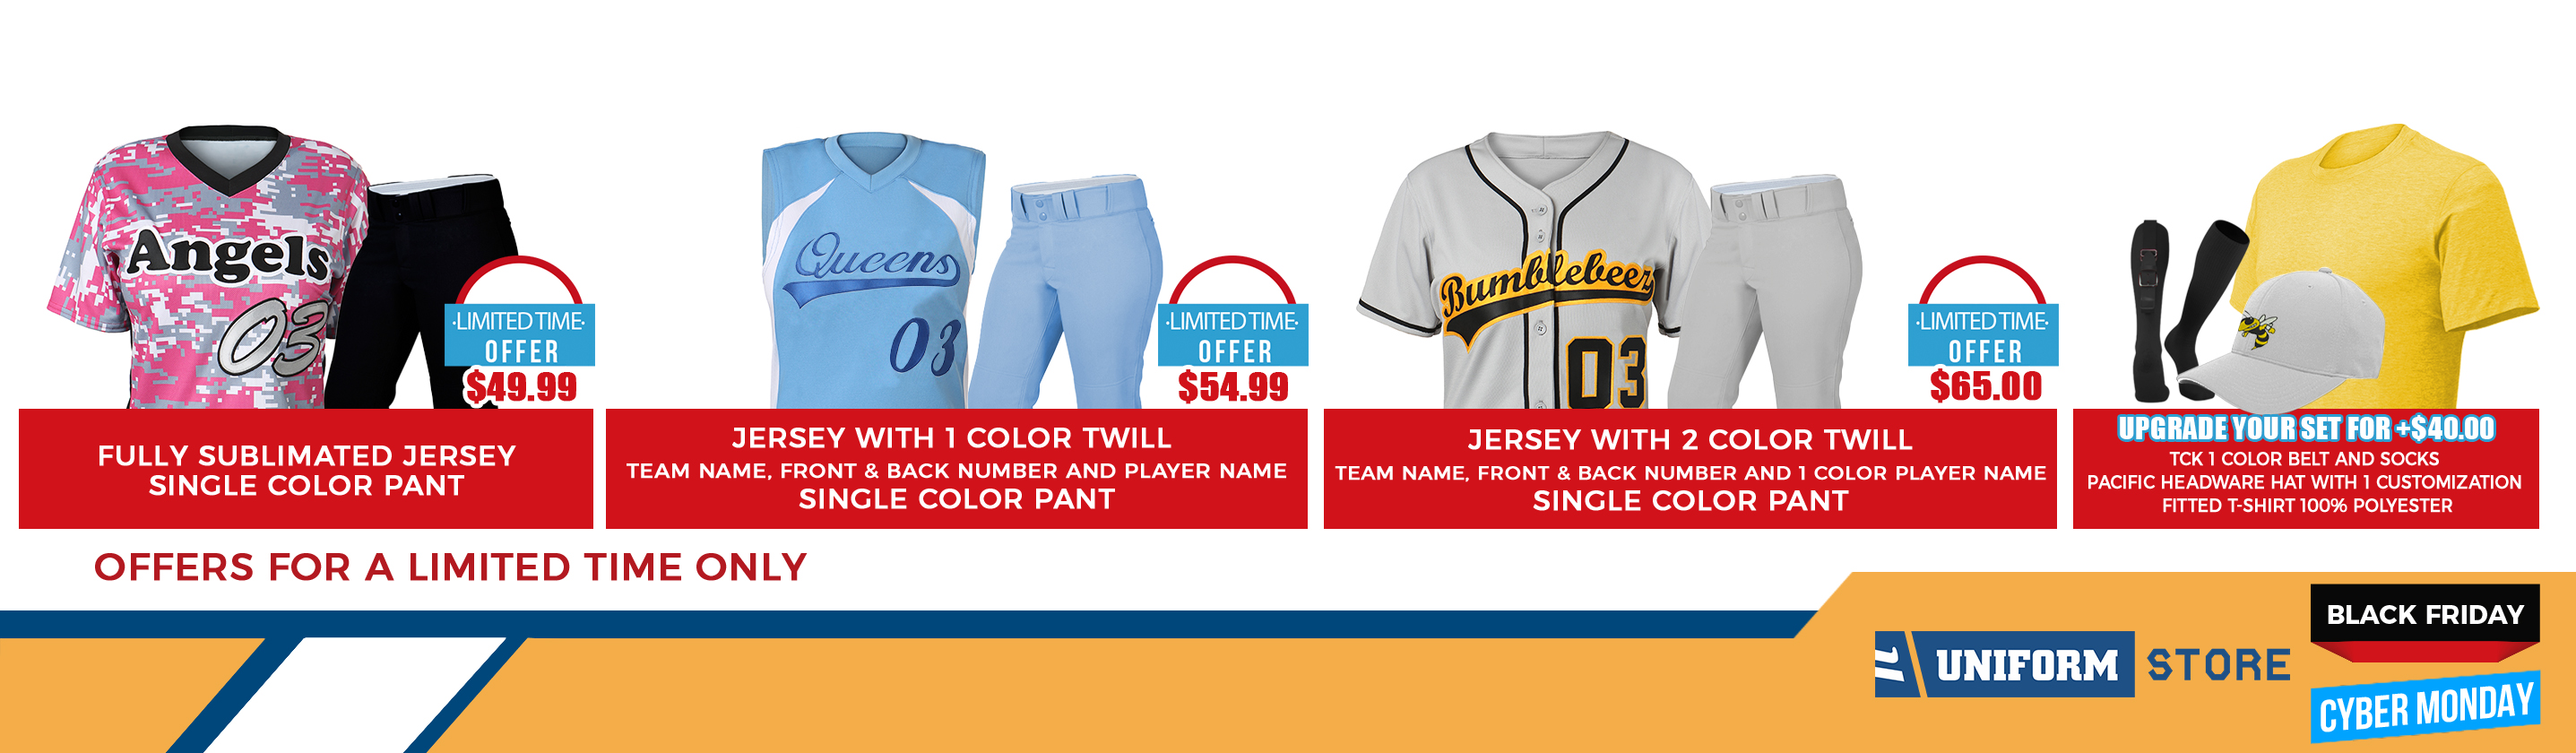 Softball jersey and uniform promo